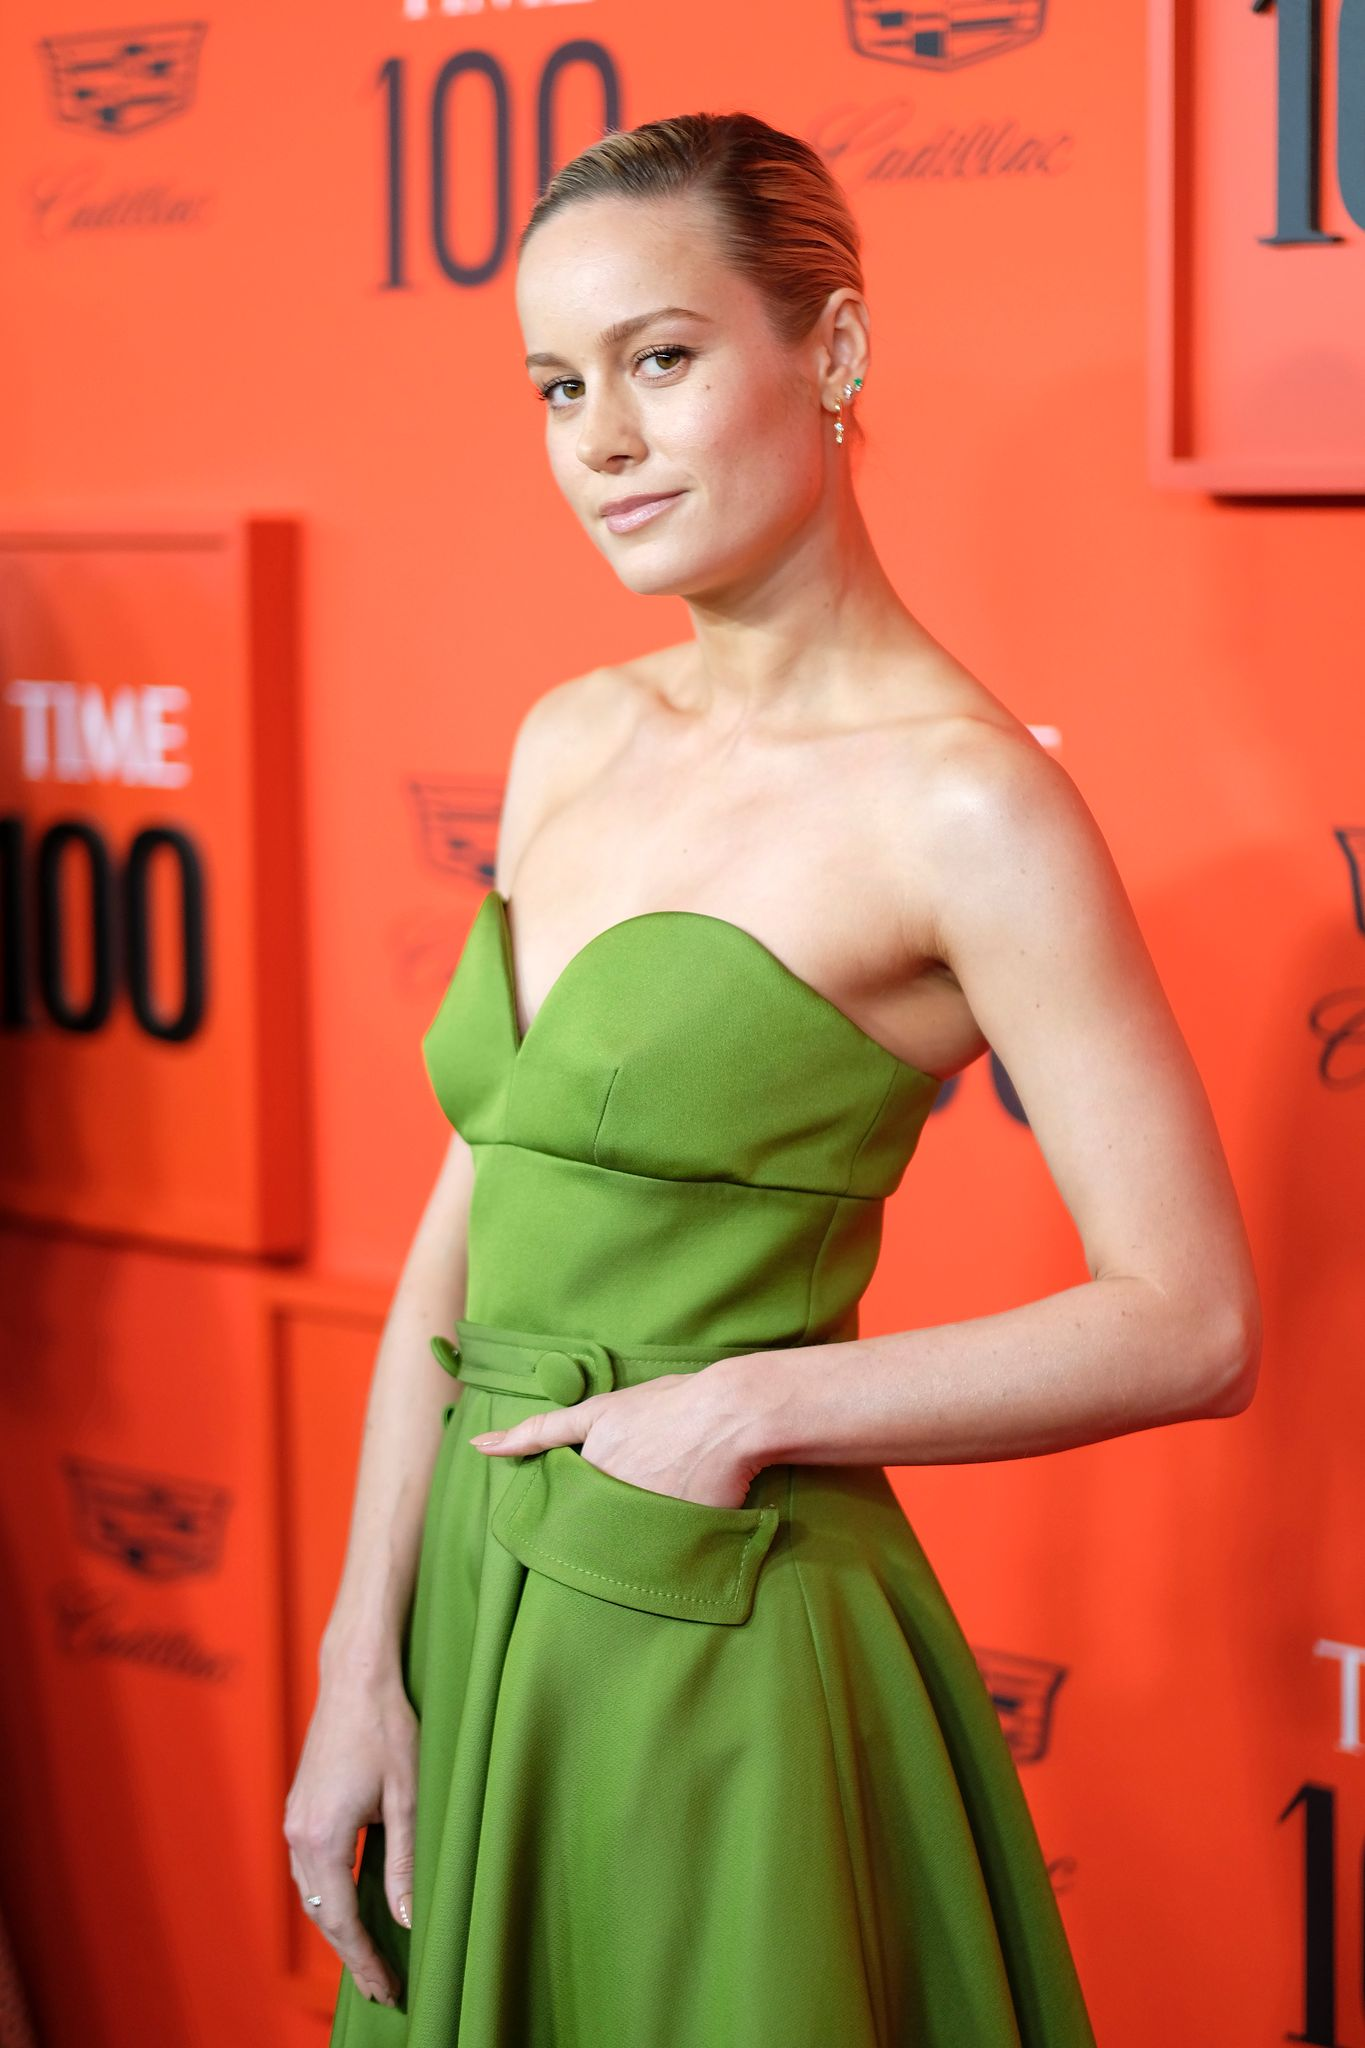 Brie Larson at Lincoln Center on April 23, 2019 in New York City.   Photo: Getty Images